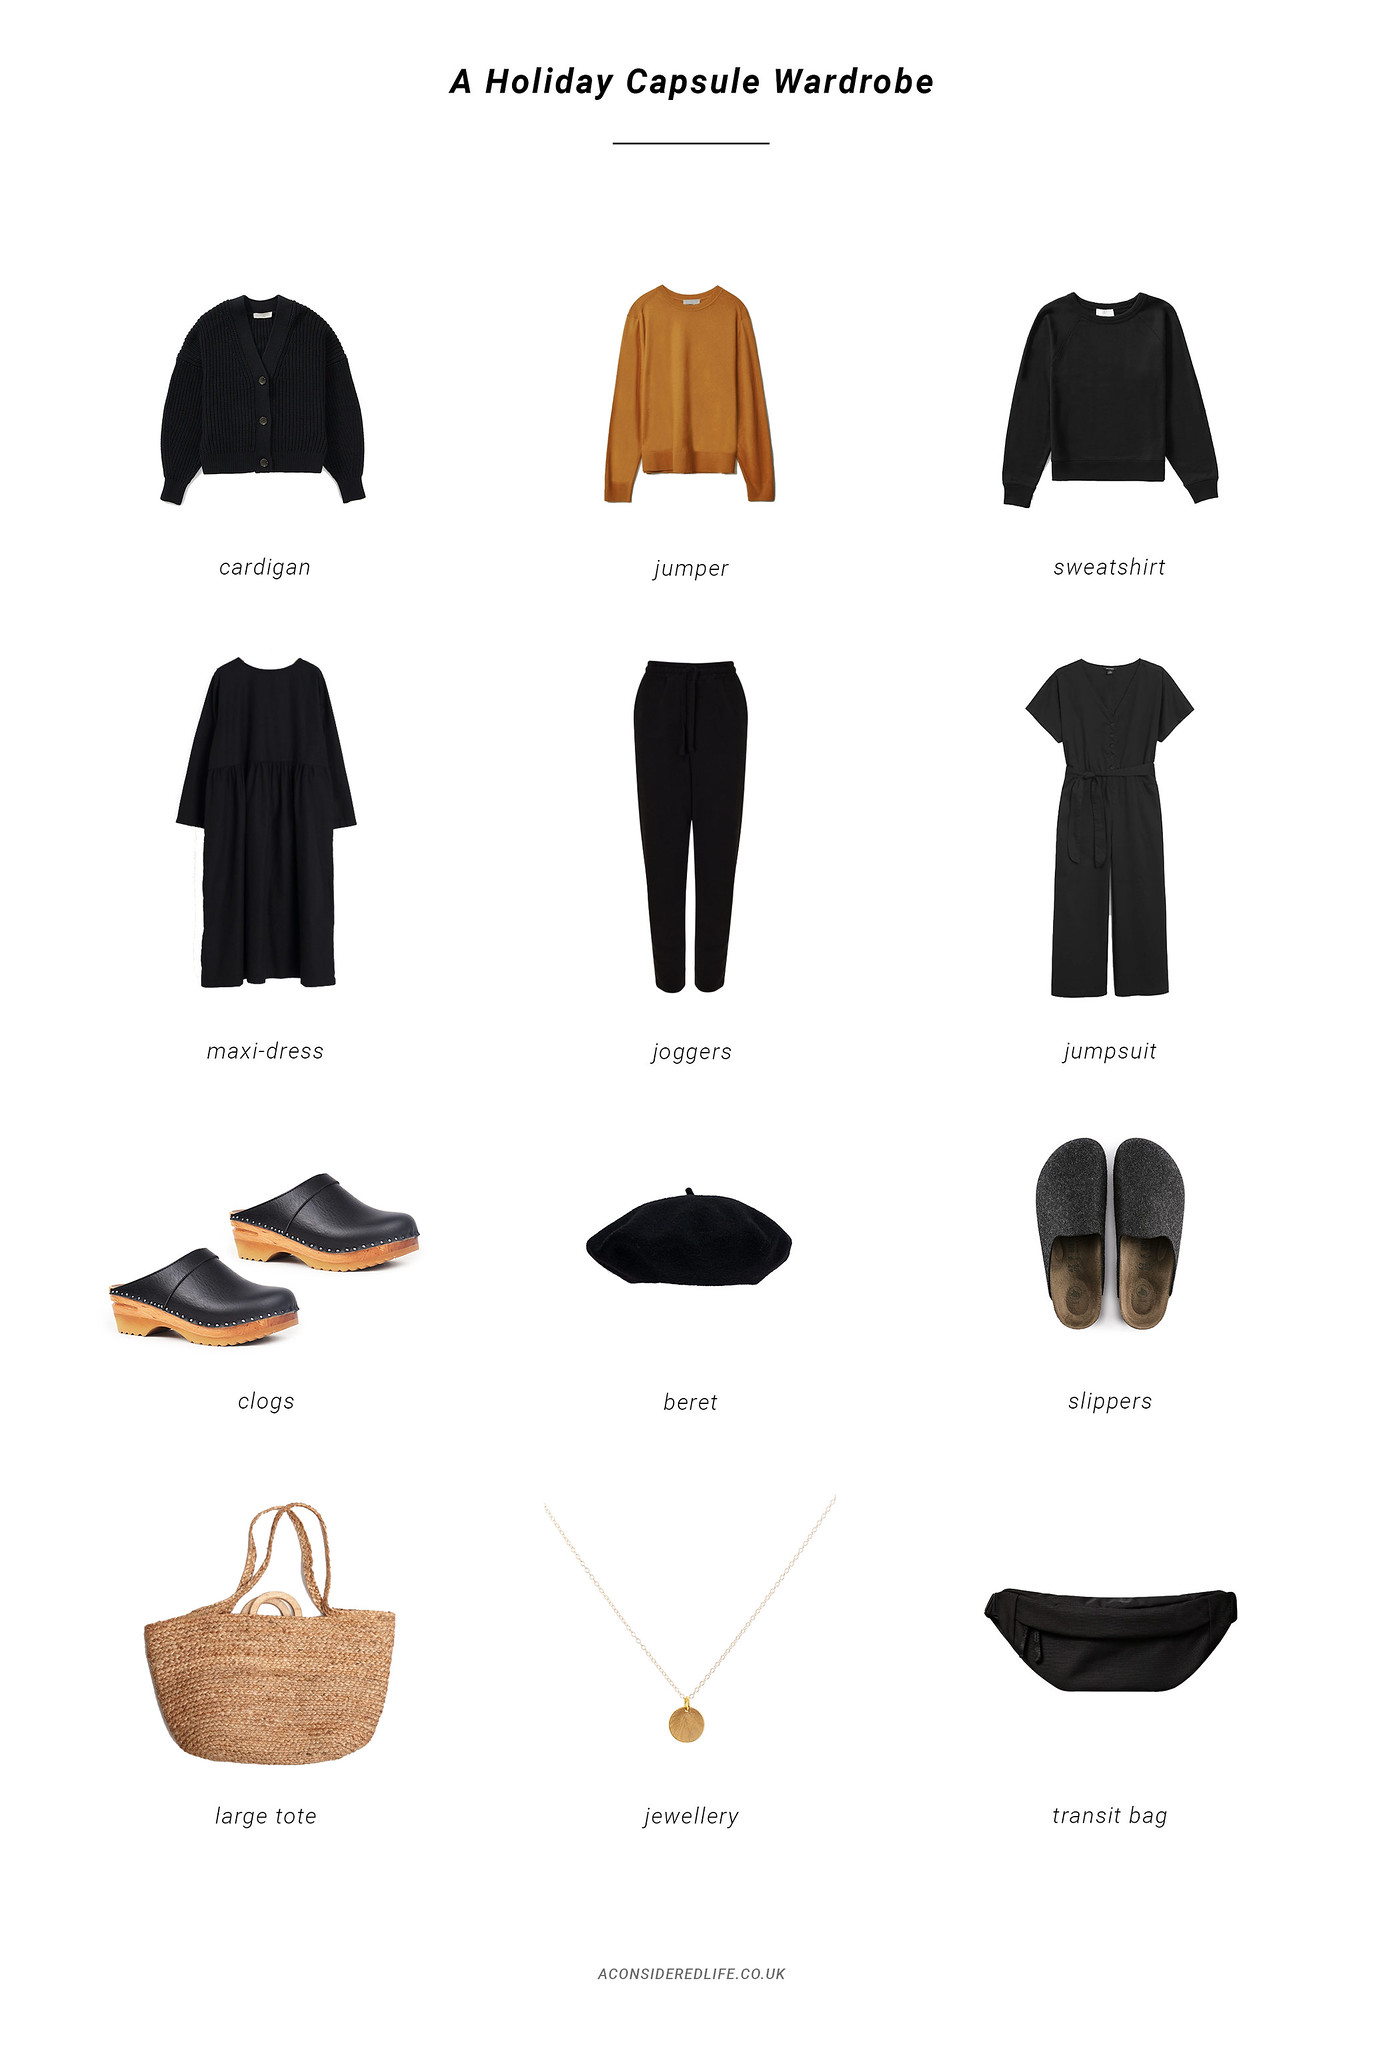 A Holiday Capsule